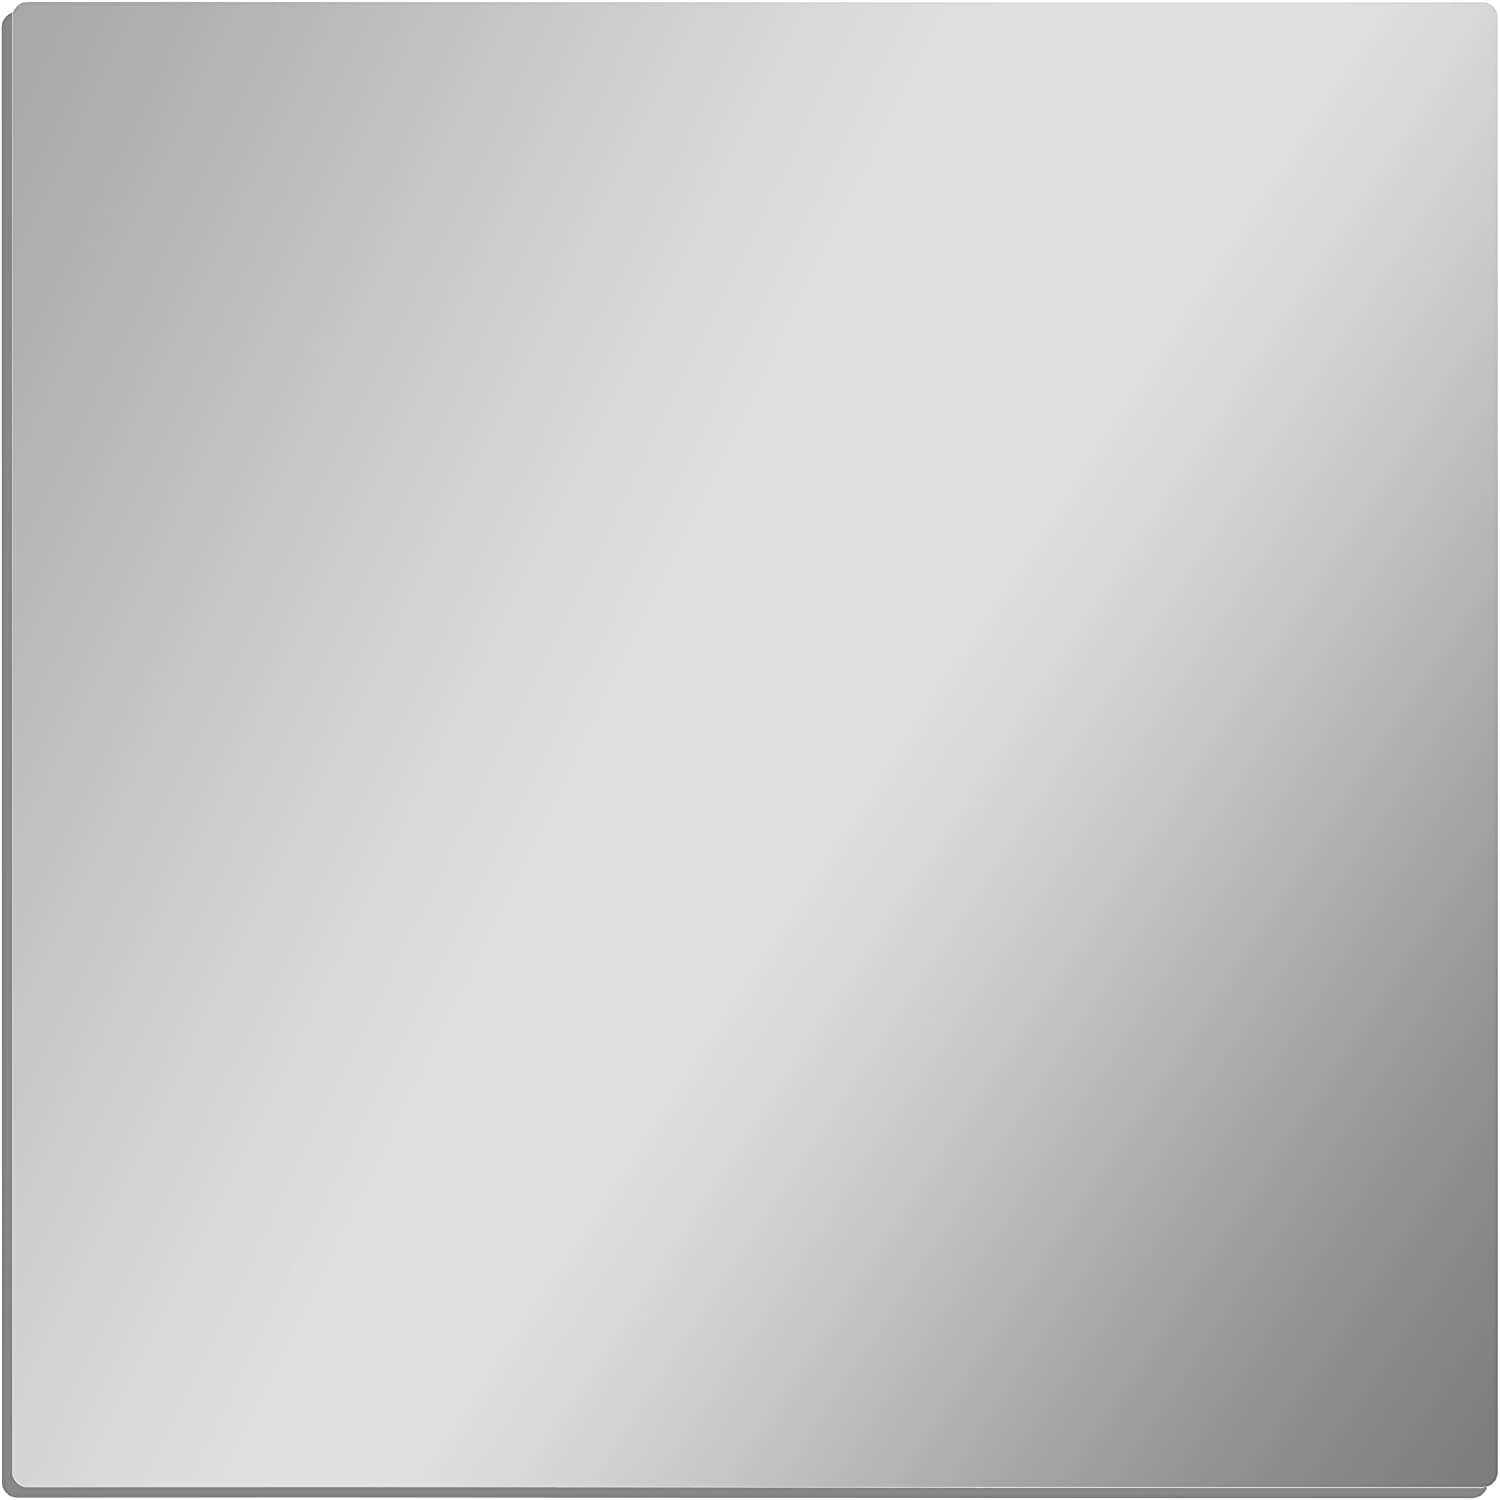 GLOSSY GALLERY Square Shatterproof Acrylic 8in Max 72% Detroit Mall OFF Mirror x - Safety